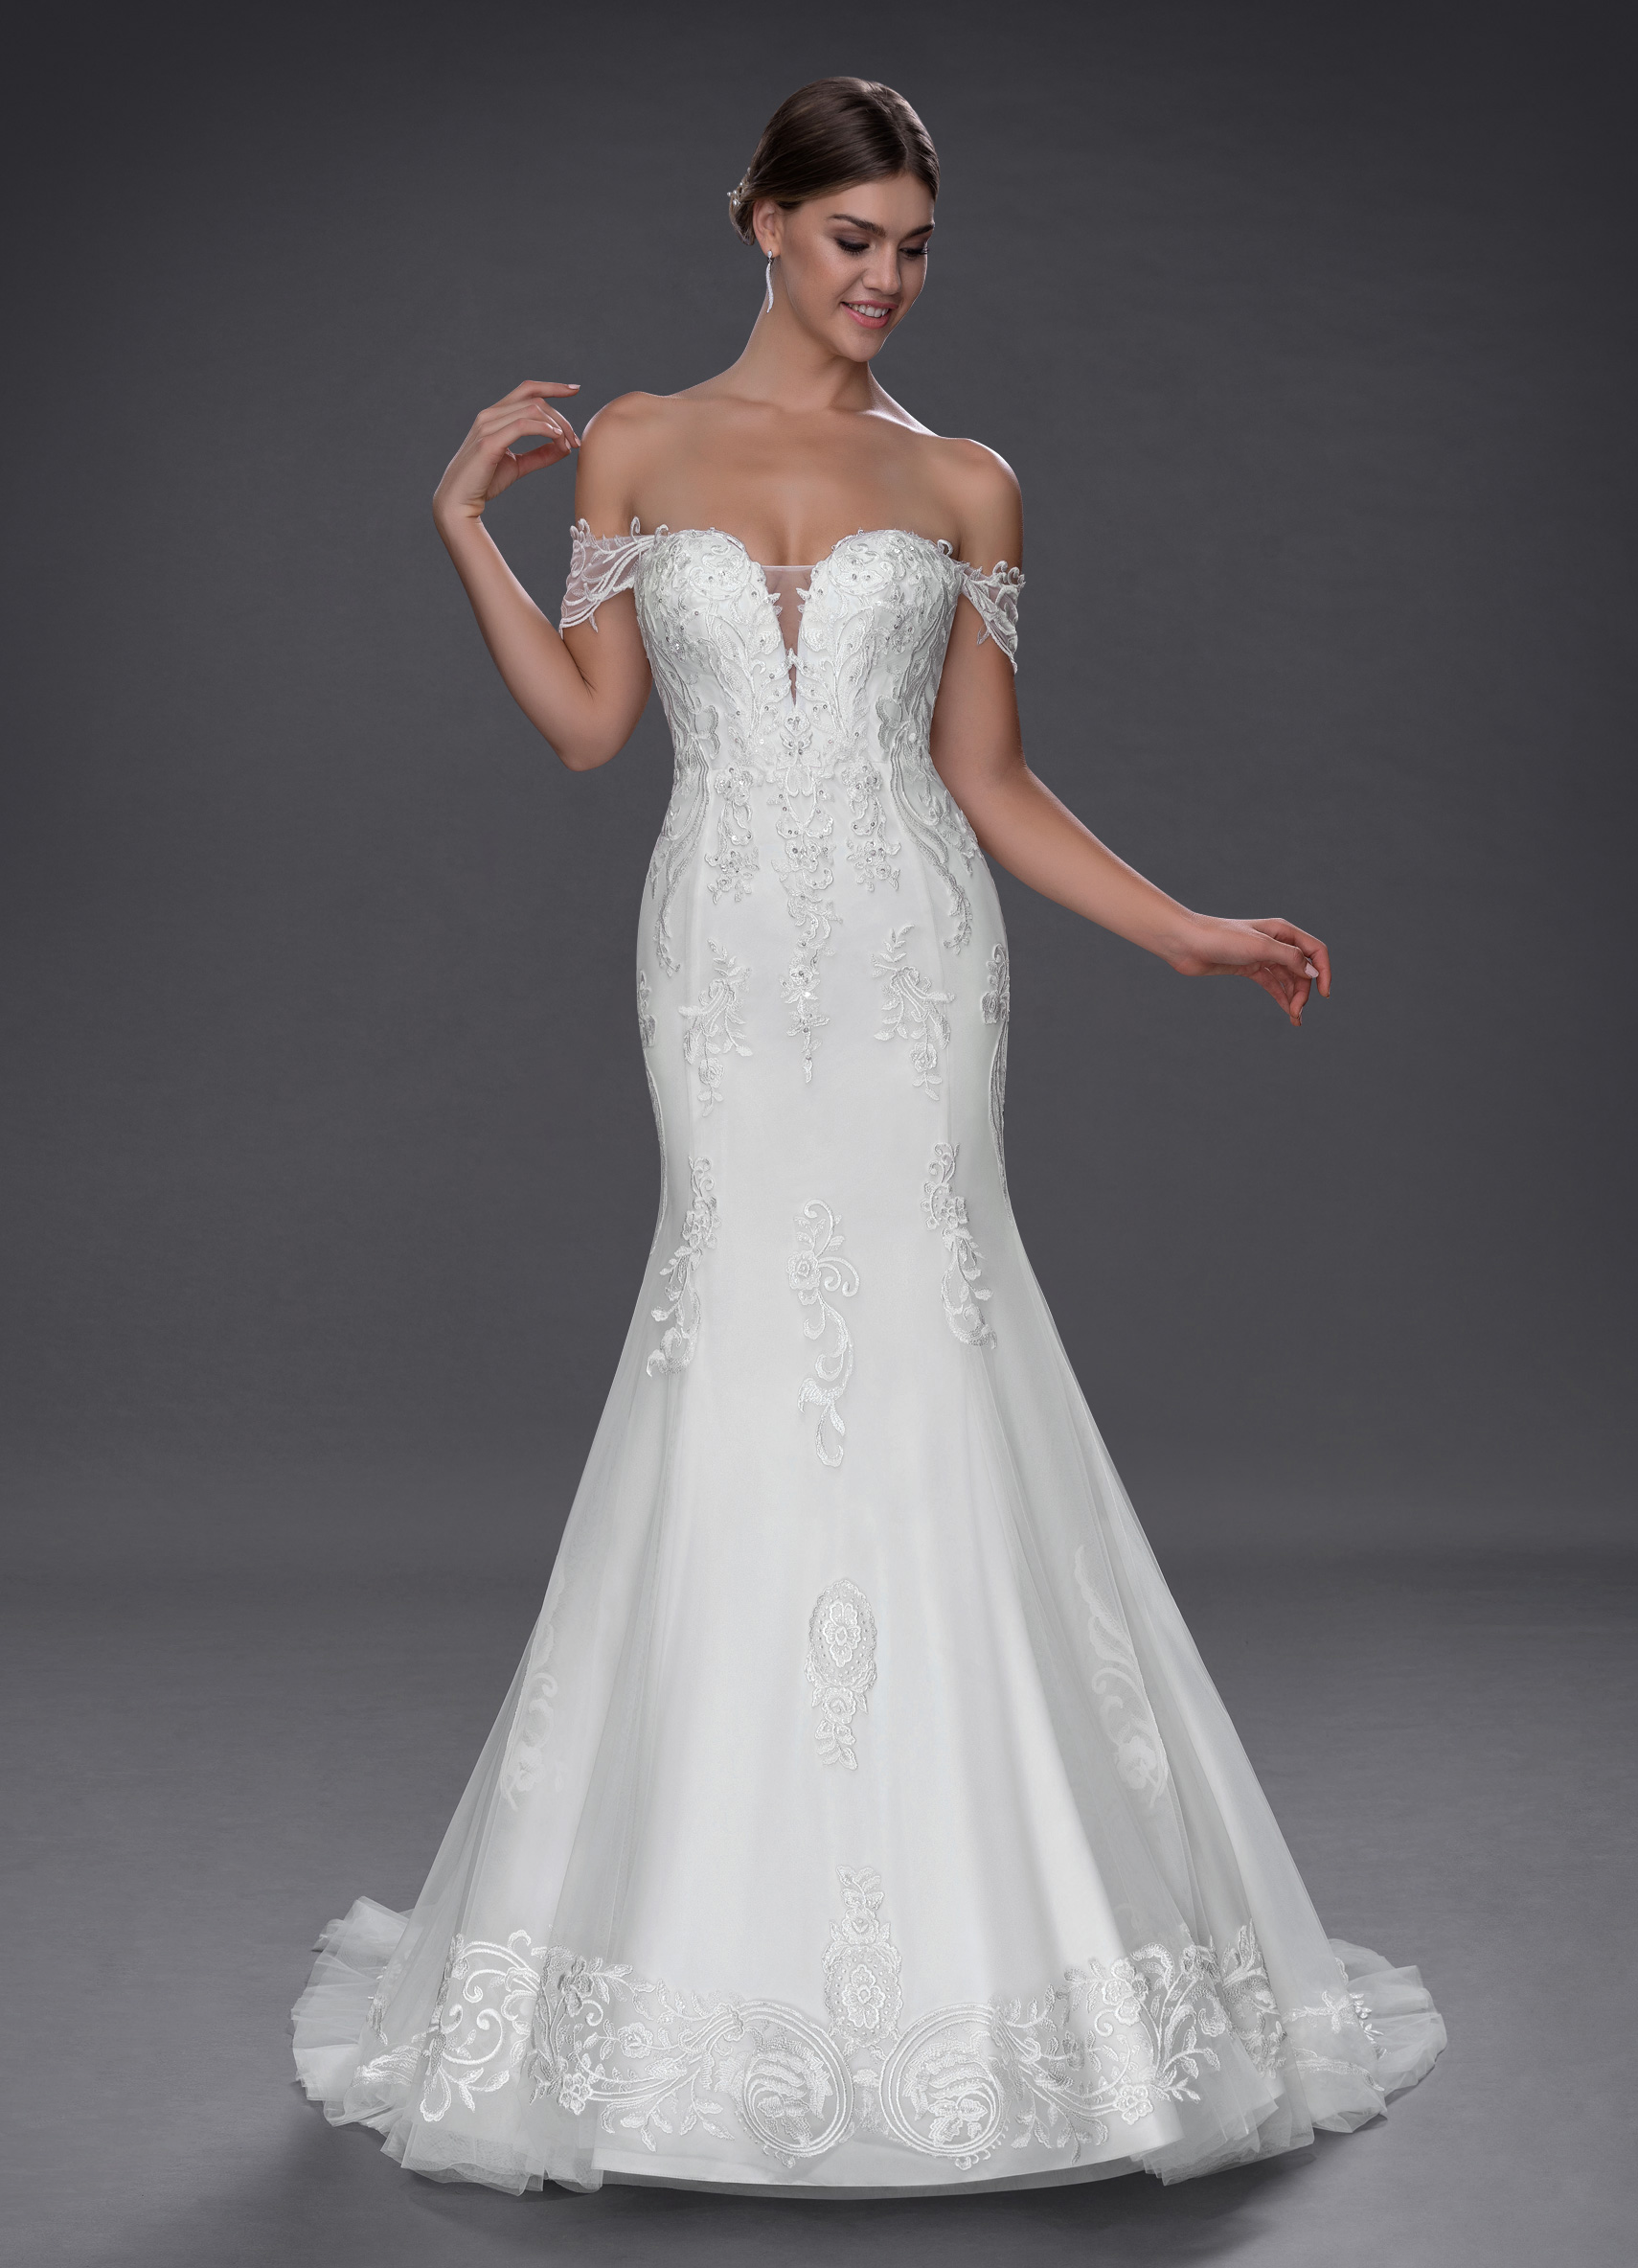 Azazie Roux wedding dress bridal gown